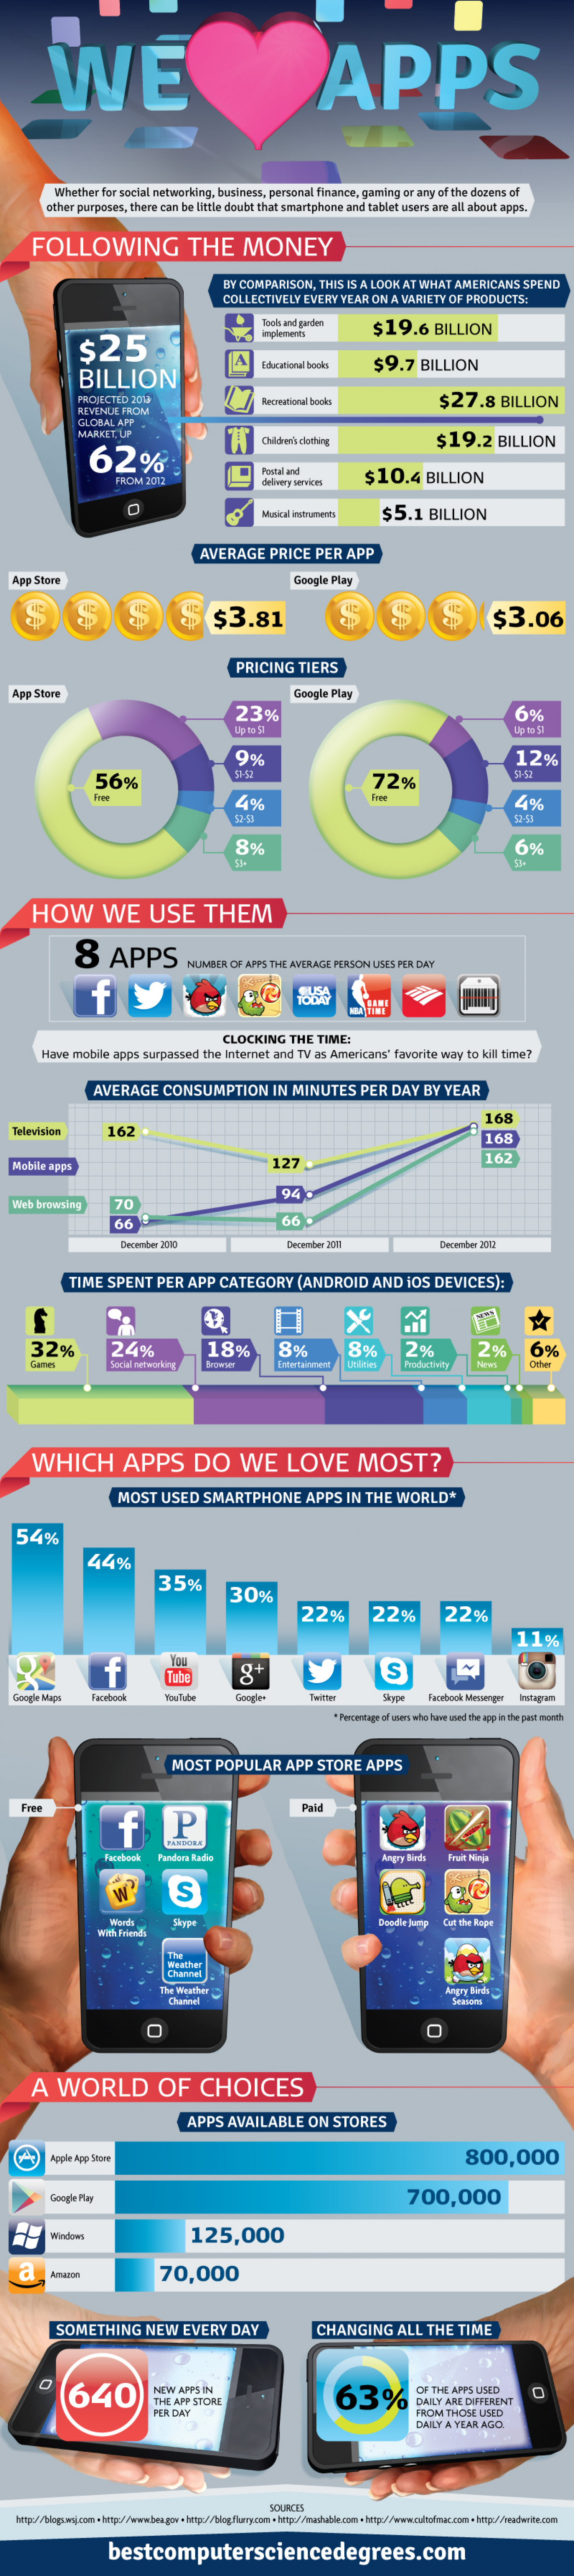 We Love Apps Infographic